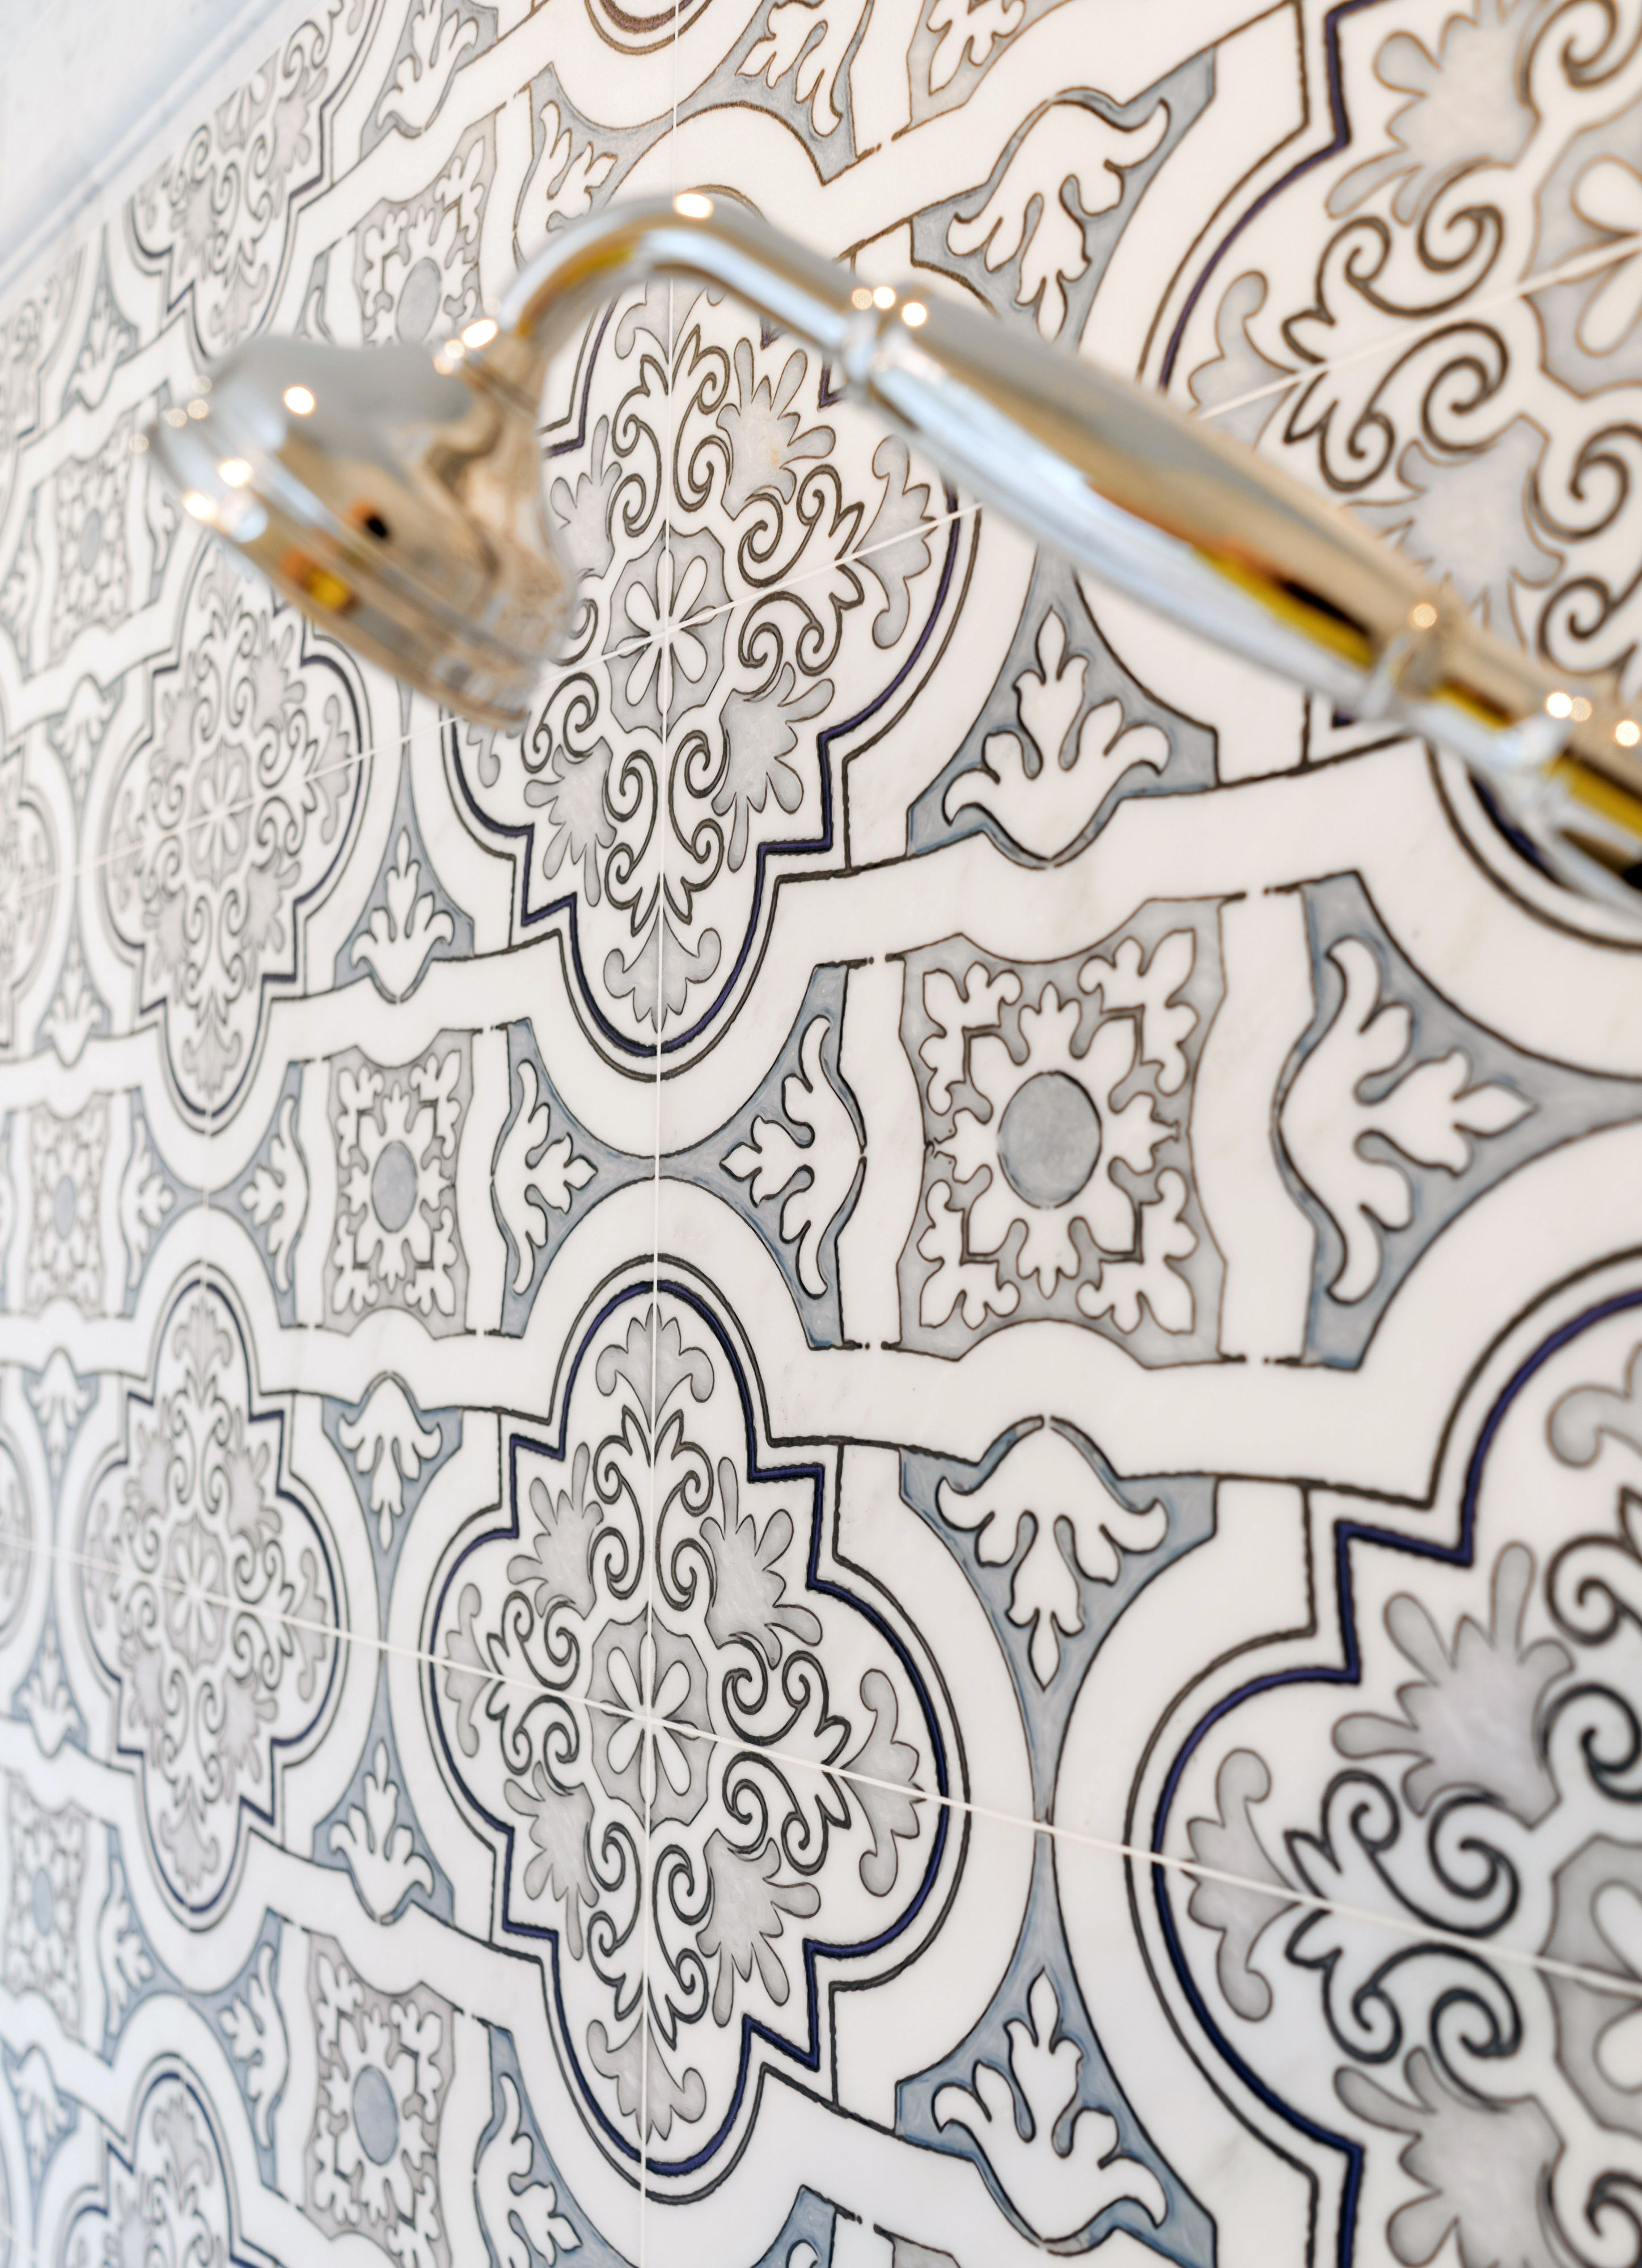 Weave pattern honed in a mesh on unfinished furniture bathroom vanity - The Lena Pattern On Carrara Marble Is A Classic And Versatile Design That Can Work In Any Room Of The House Use This Spanish Style Tile In Your Bathroom